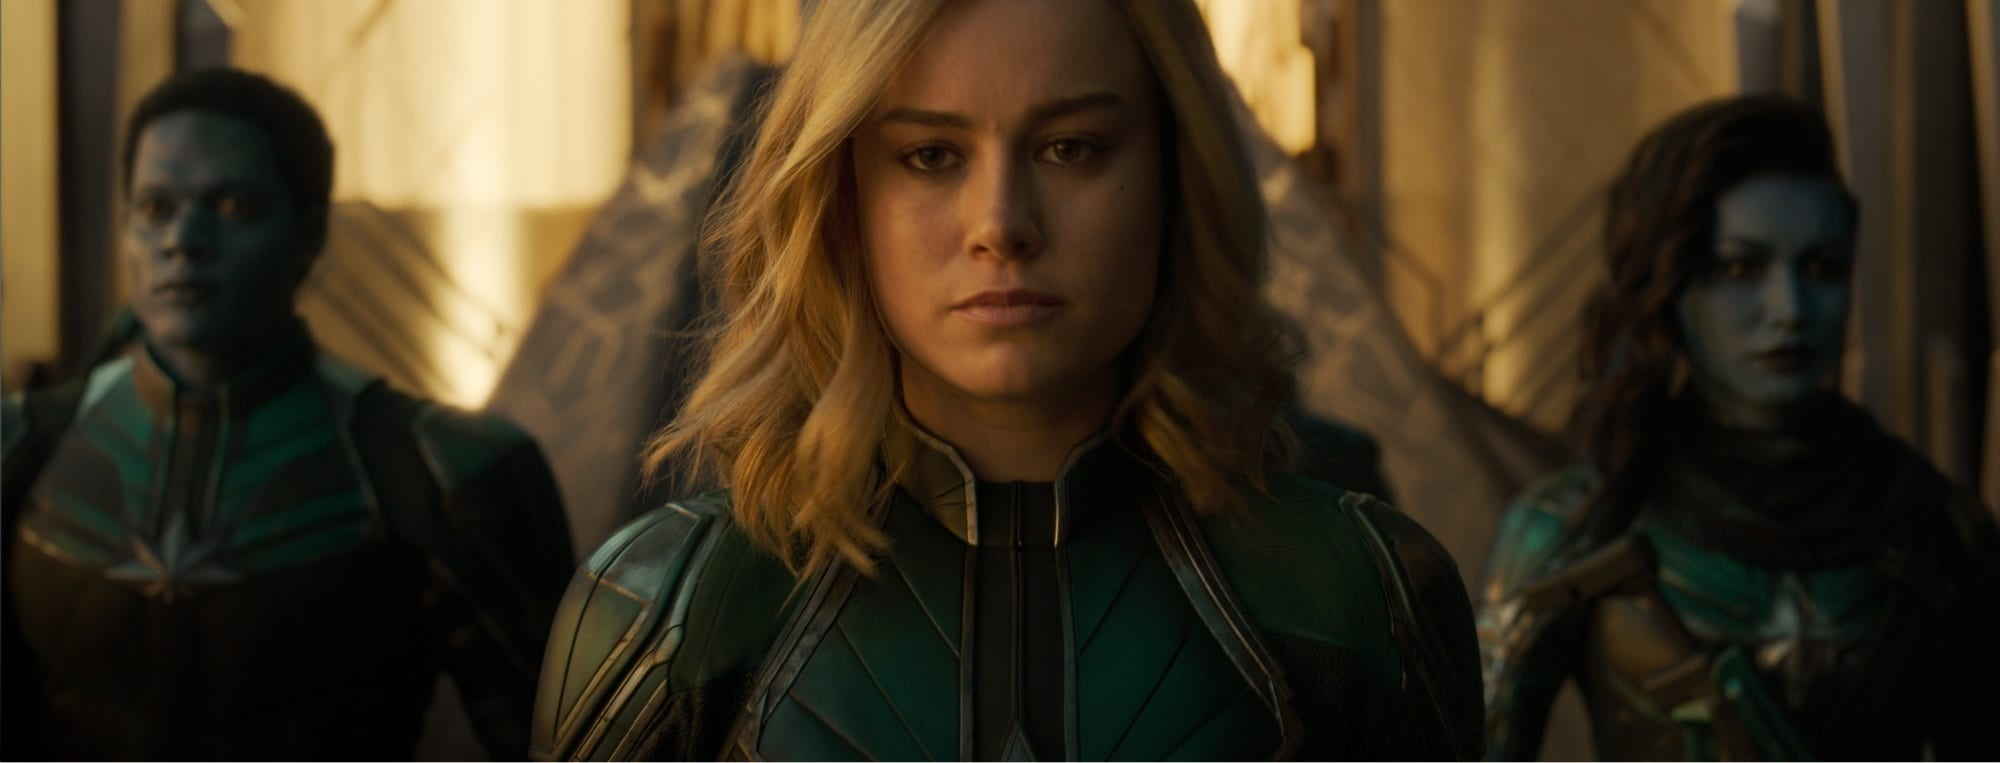 Captain Marvel - Alles wat je moet weten over Captain Marvel